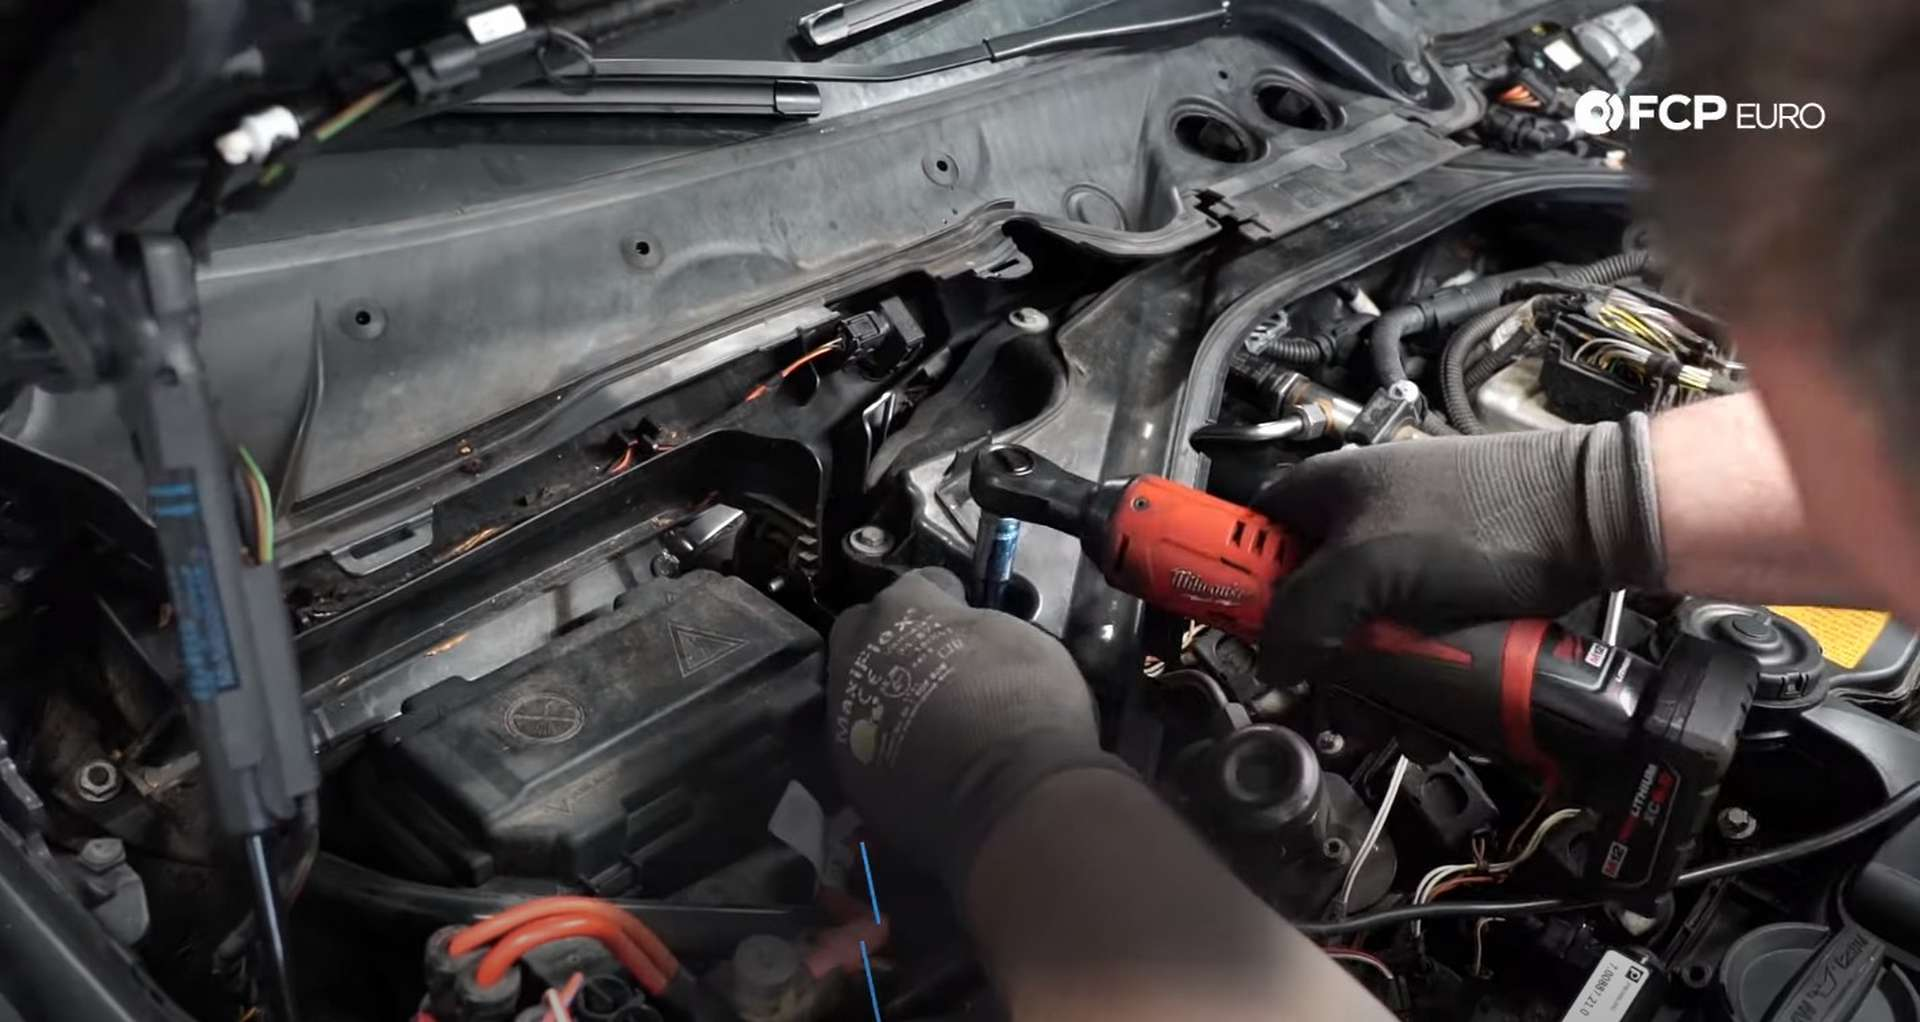 06-DIY-BMW-F30-Valve-Cover-Replacement_Exposing-Valve-Cover